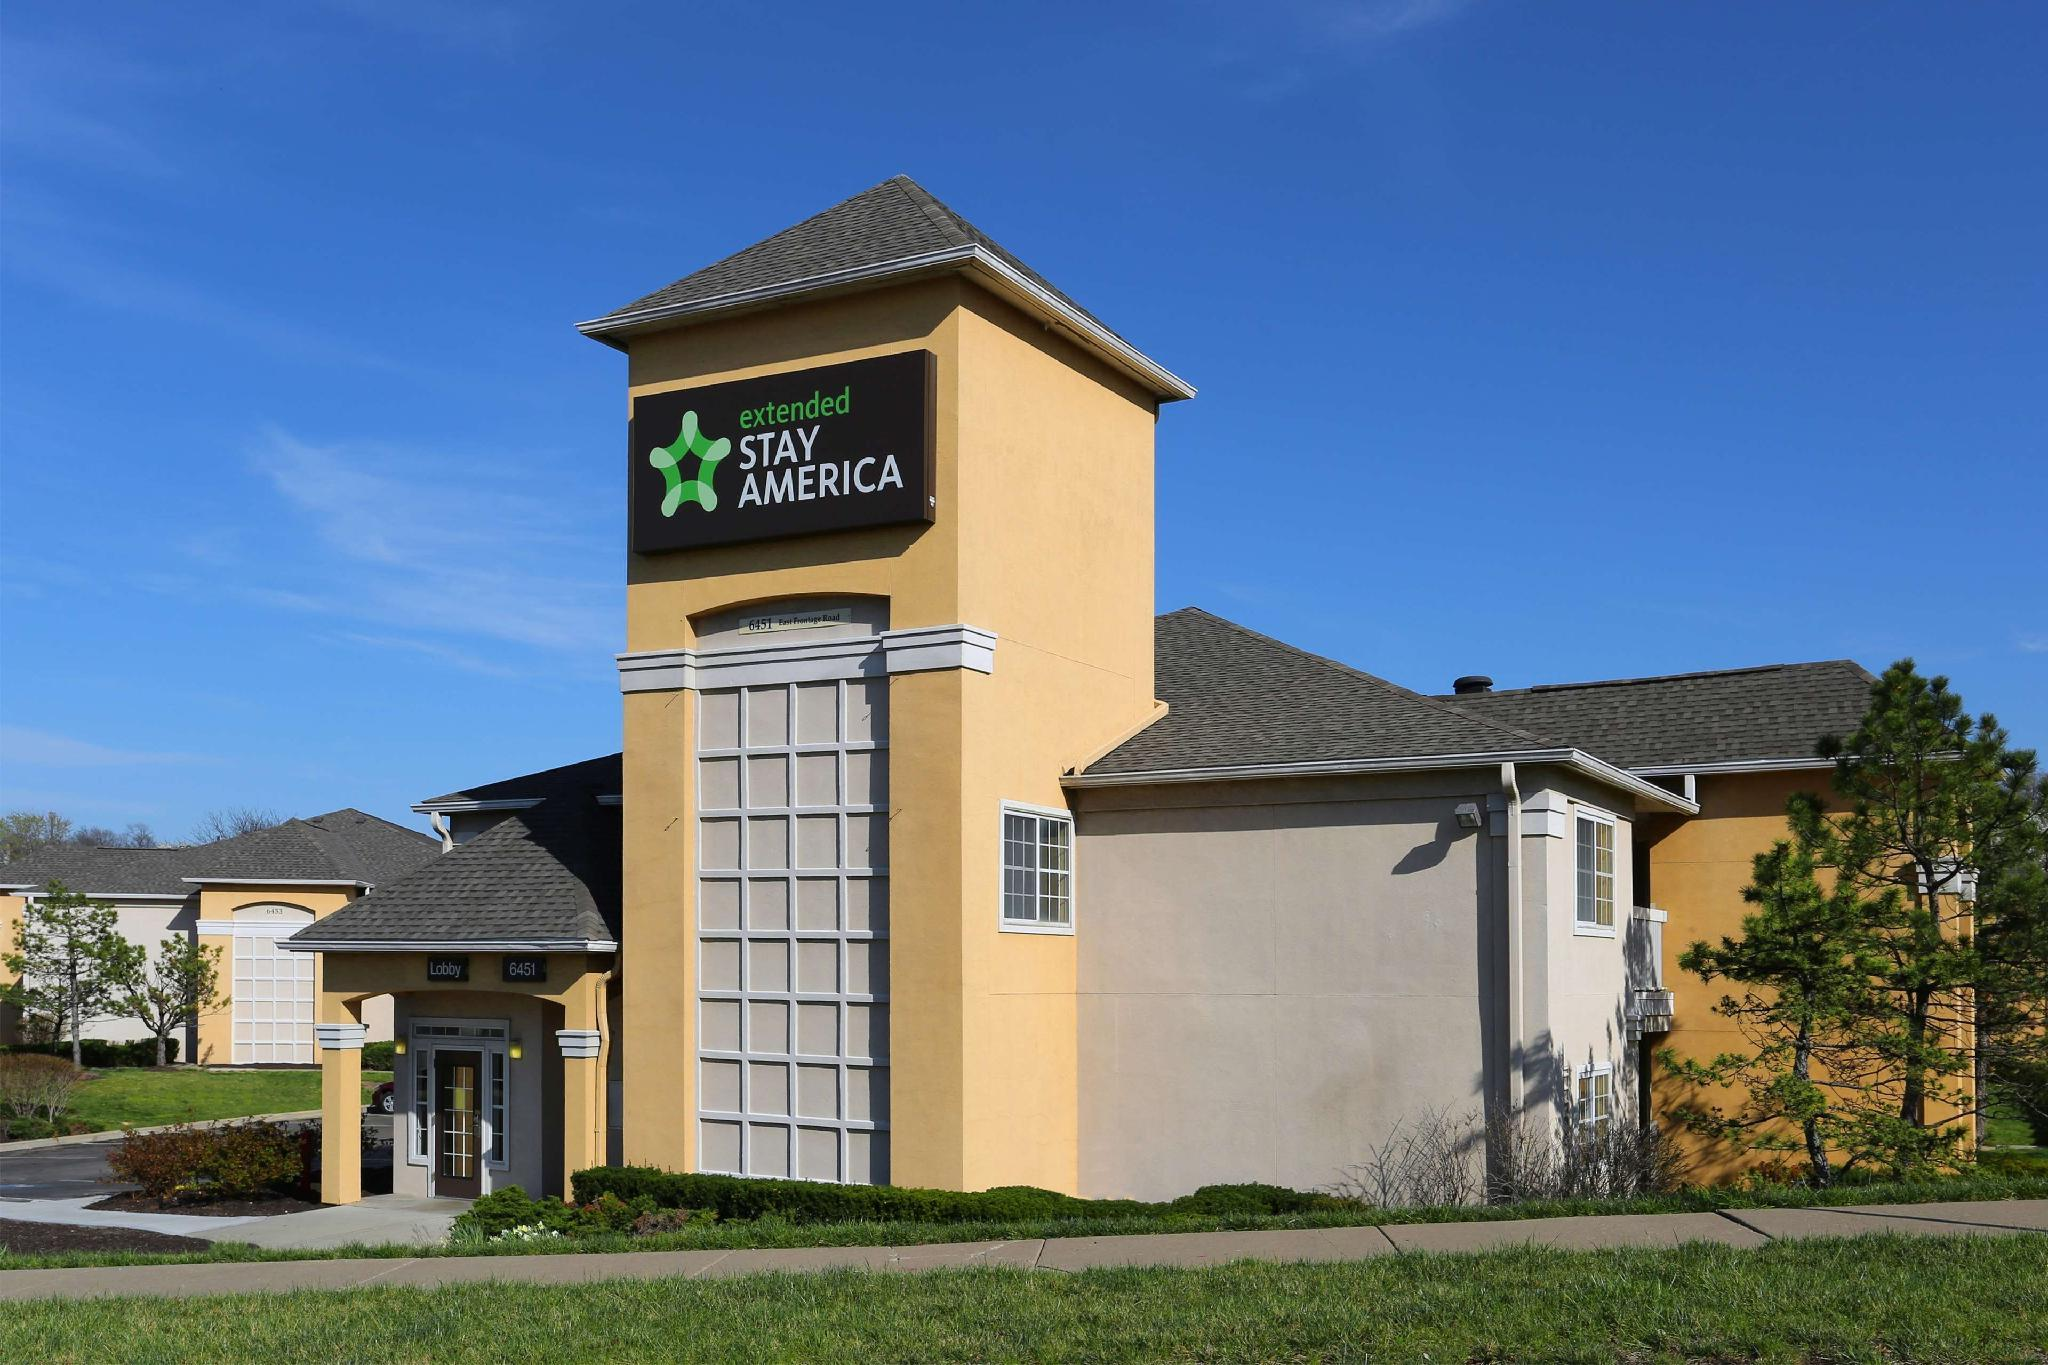 Extended Stay America Kansas City Shawnee Mission